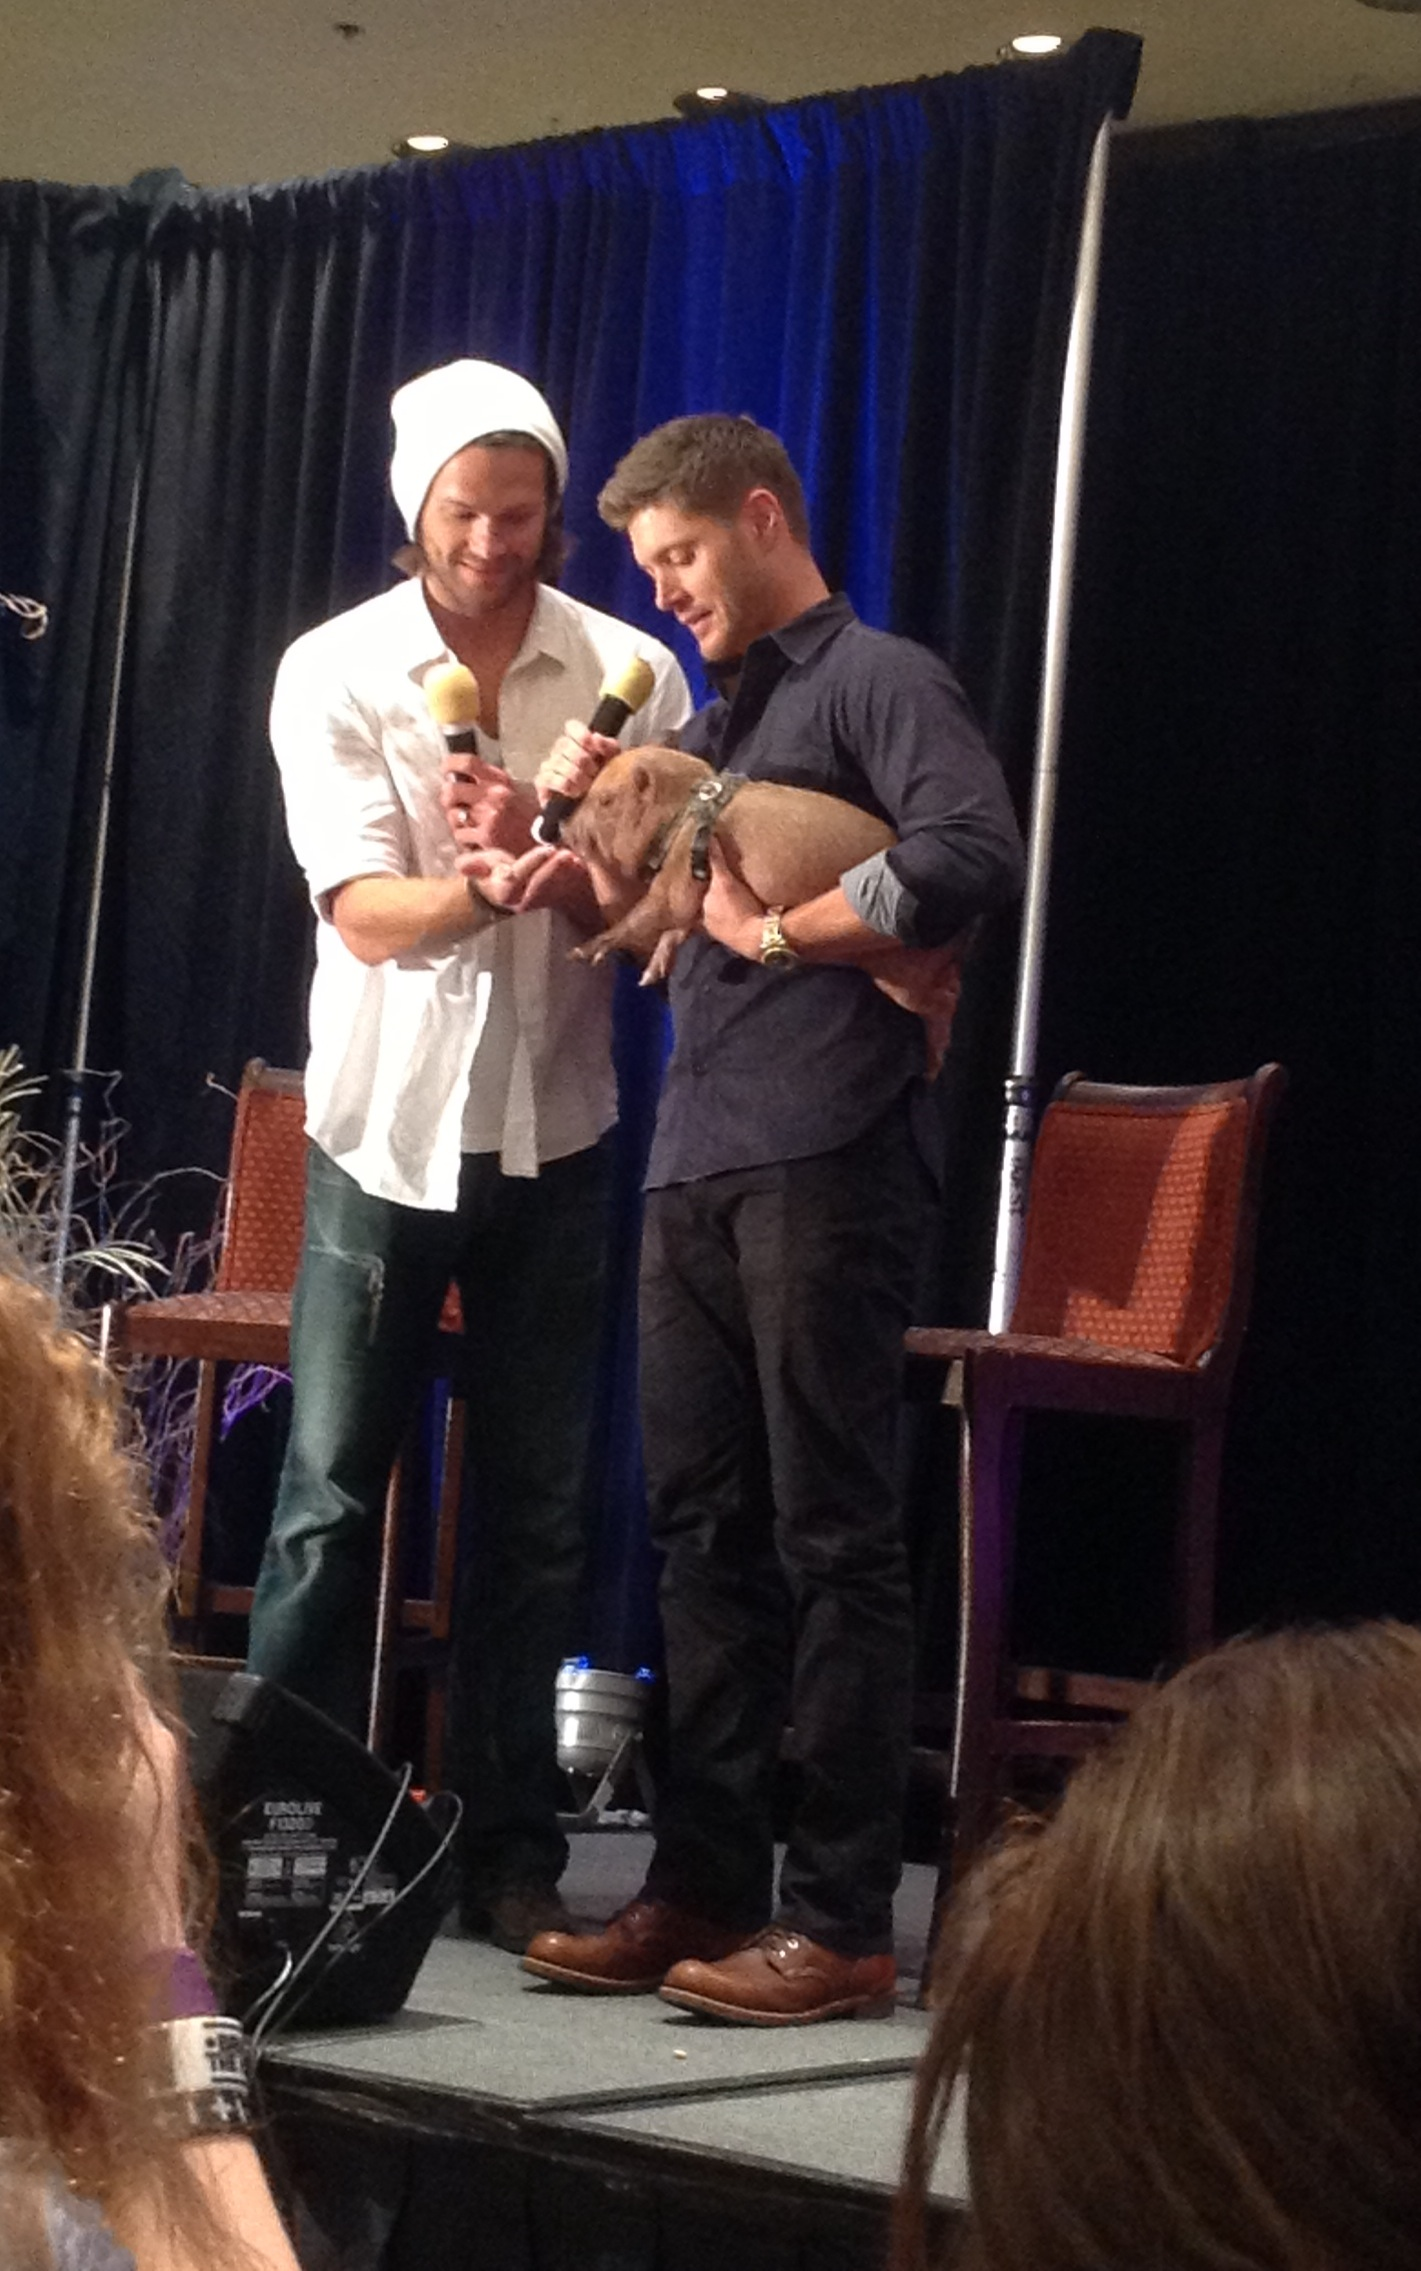 Jensen ackles at dallascon meet and greet excerpts and that jared jensen and icarus the pig m4hsunfo